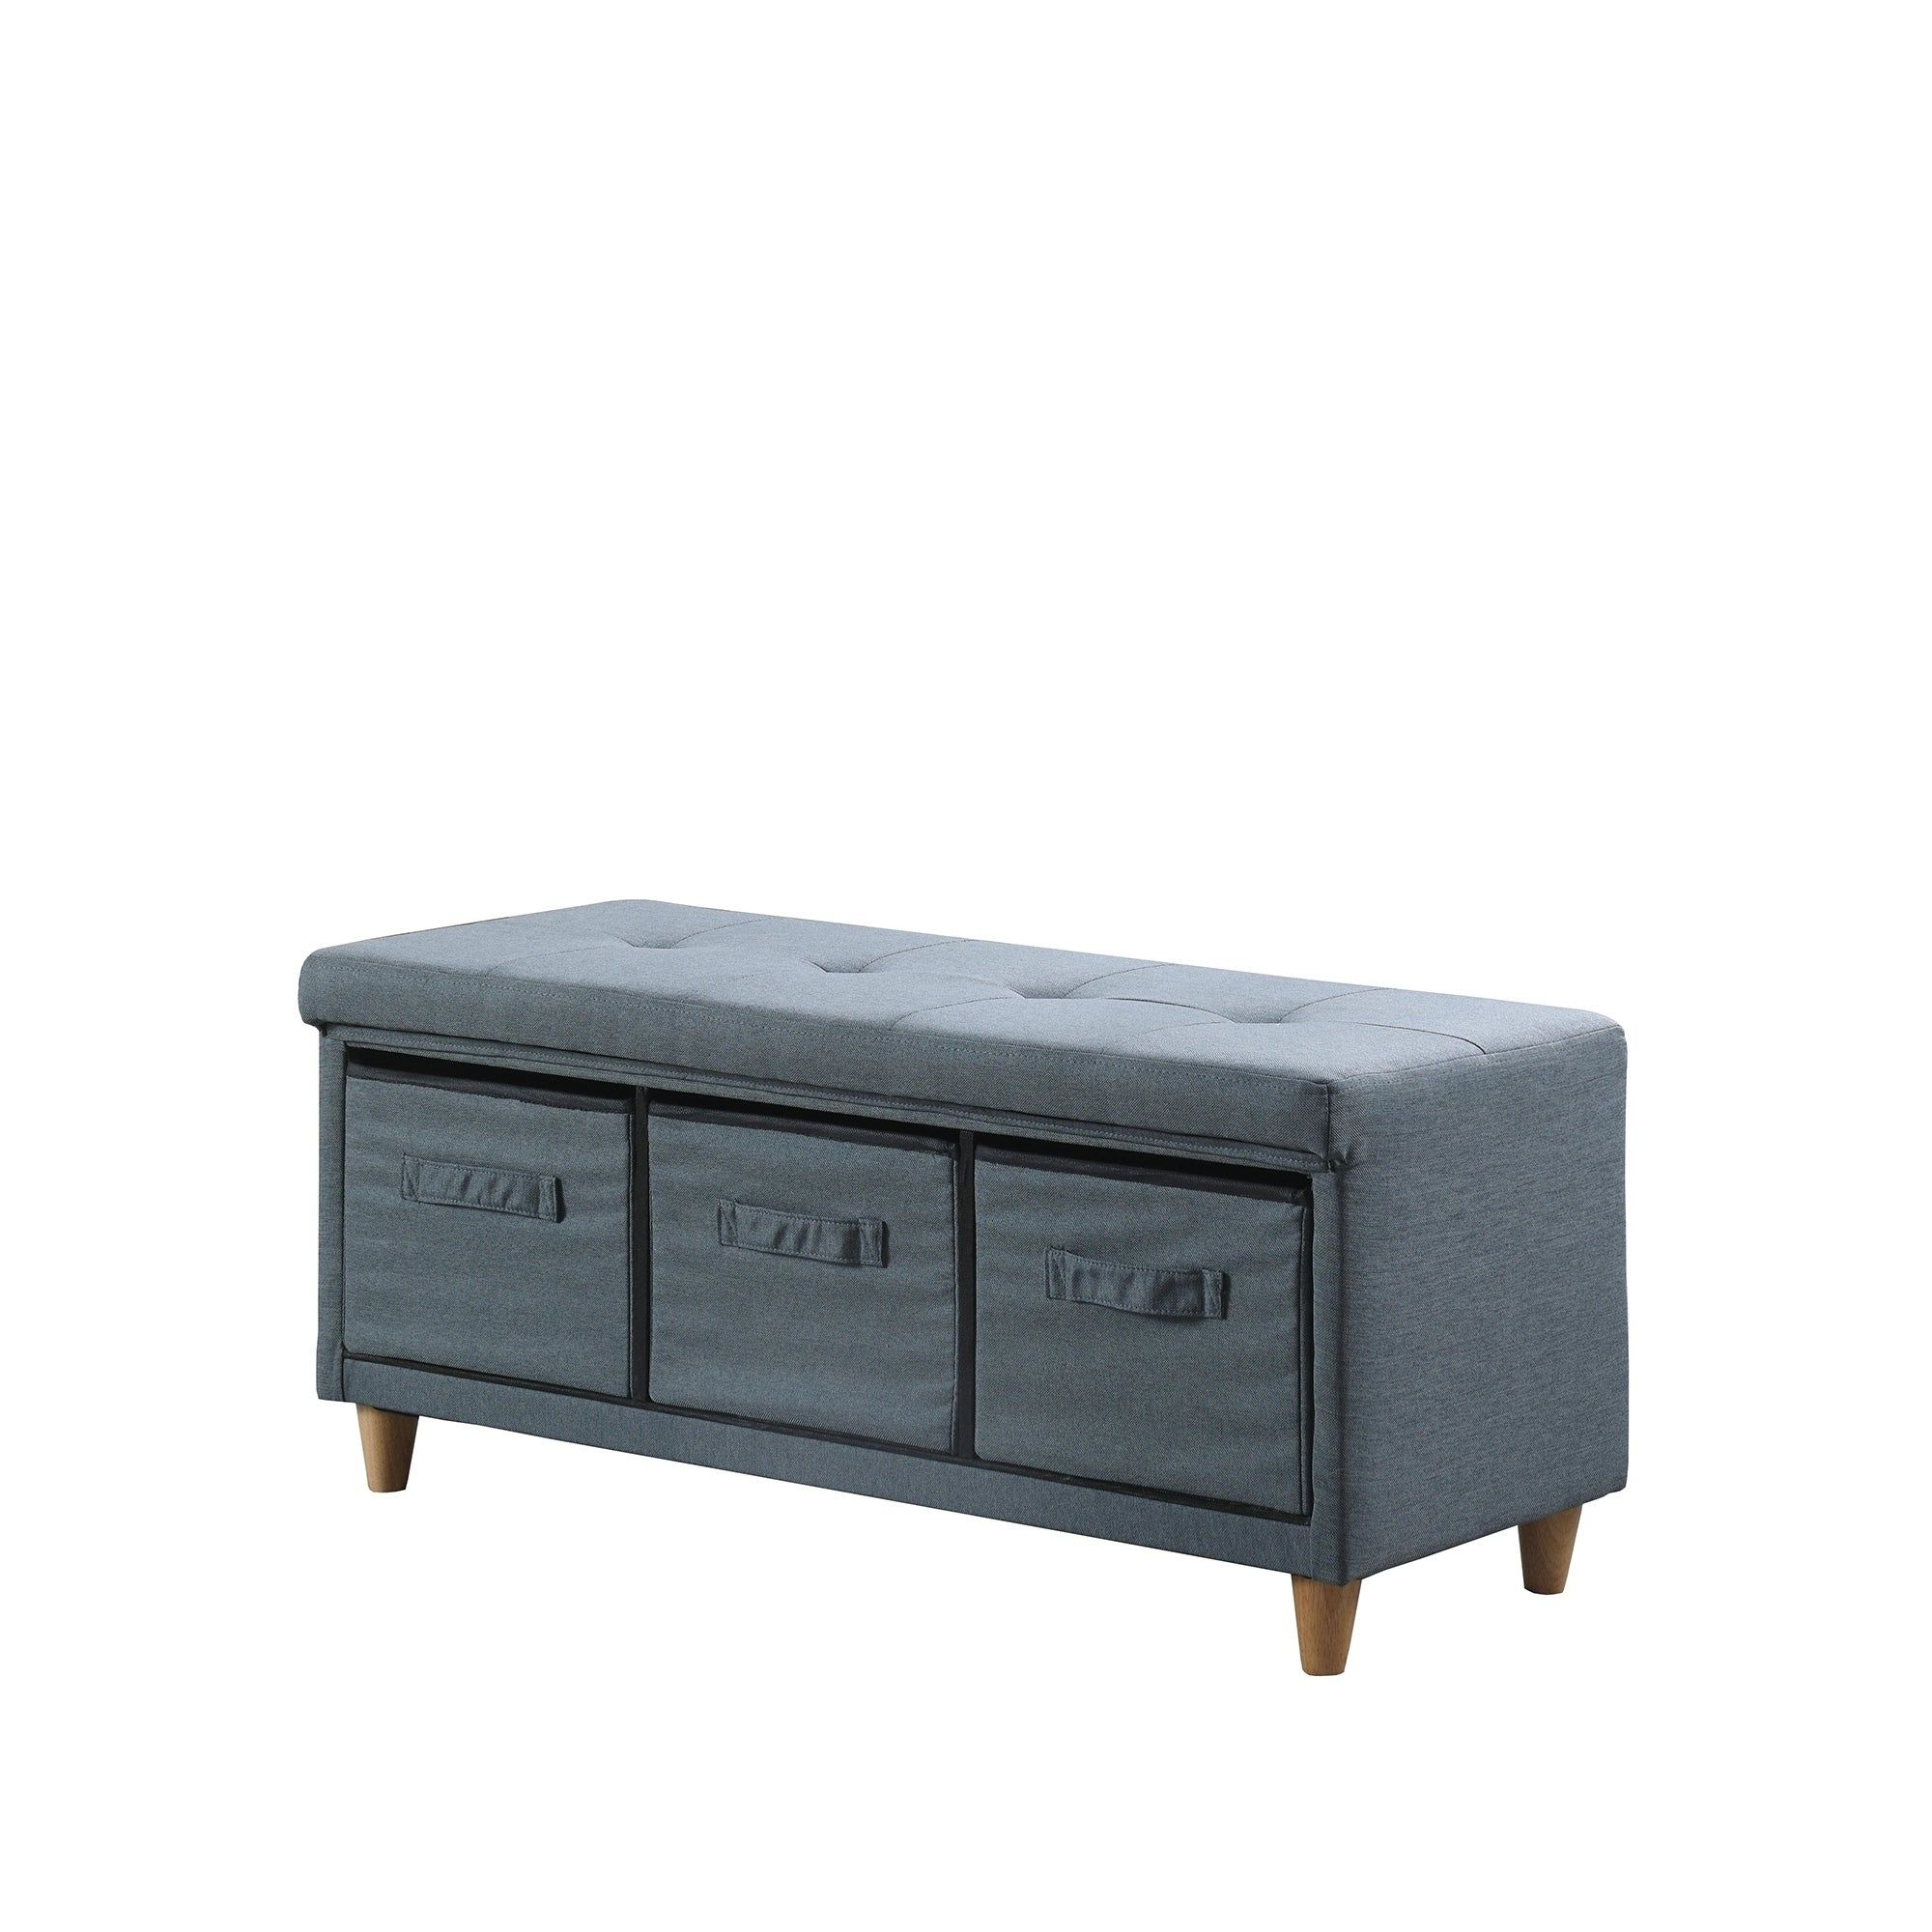 Magnolia Blue Grey Tufted Bench With Storage Basket Drawer Gray